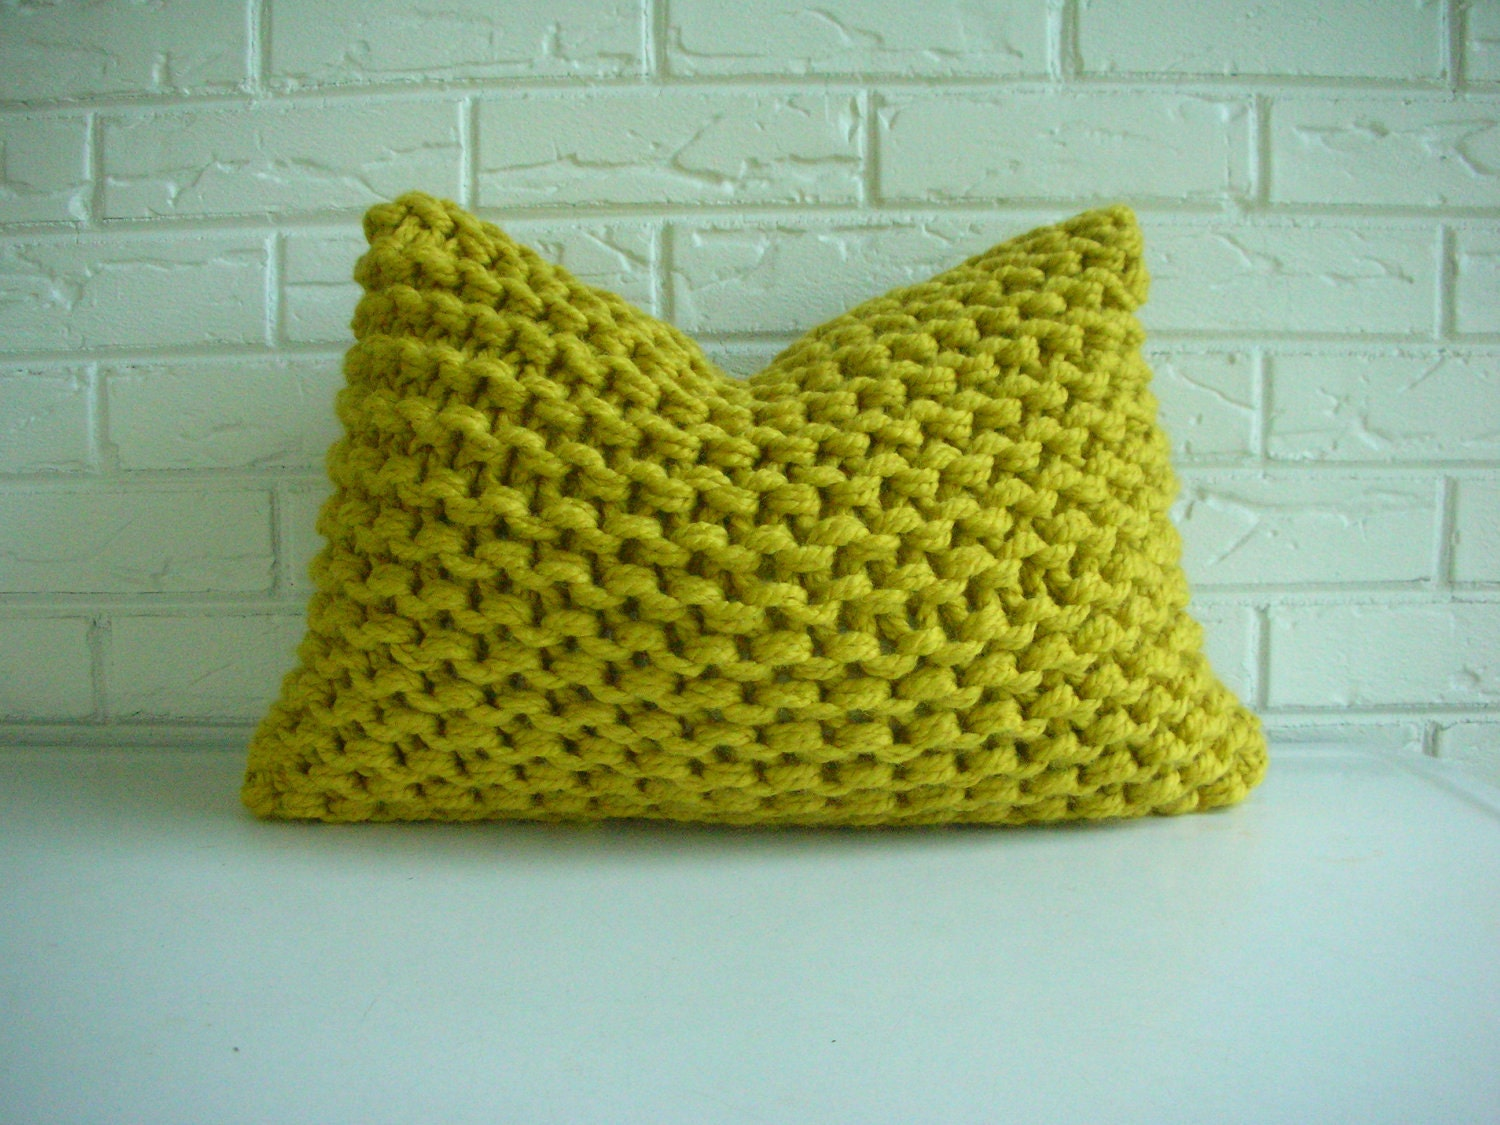 Knit Throw Pillow Cover Pattern : Hand Knit Pillow Cover Decorative Throw Accent Lumbar Chunky